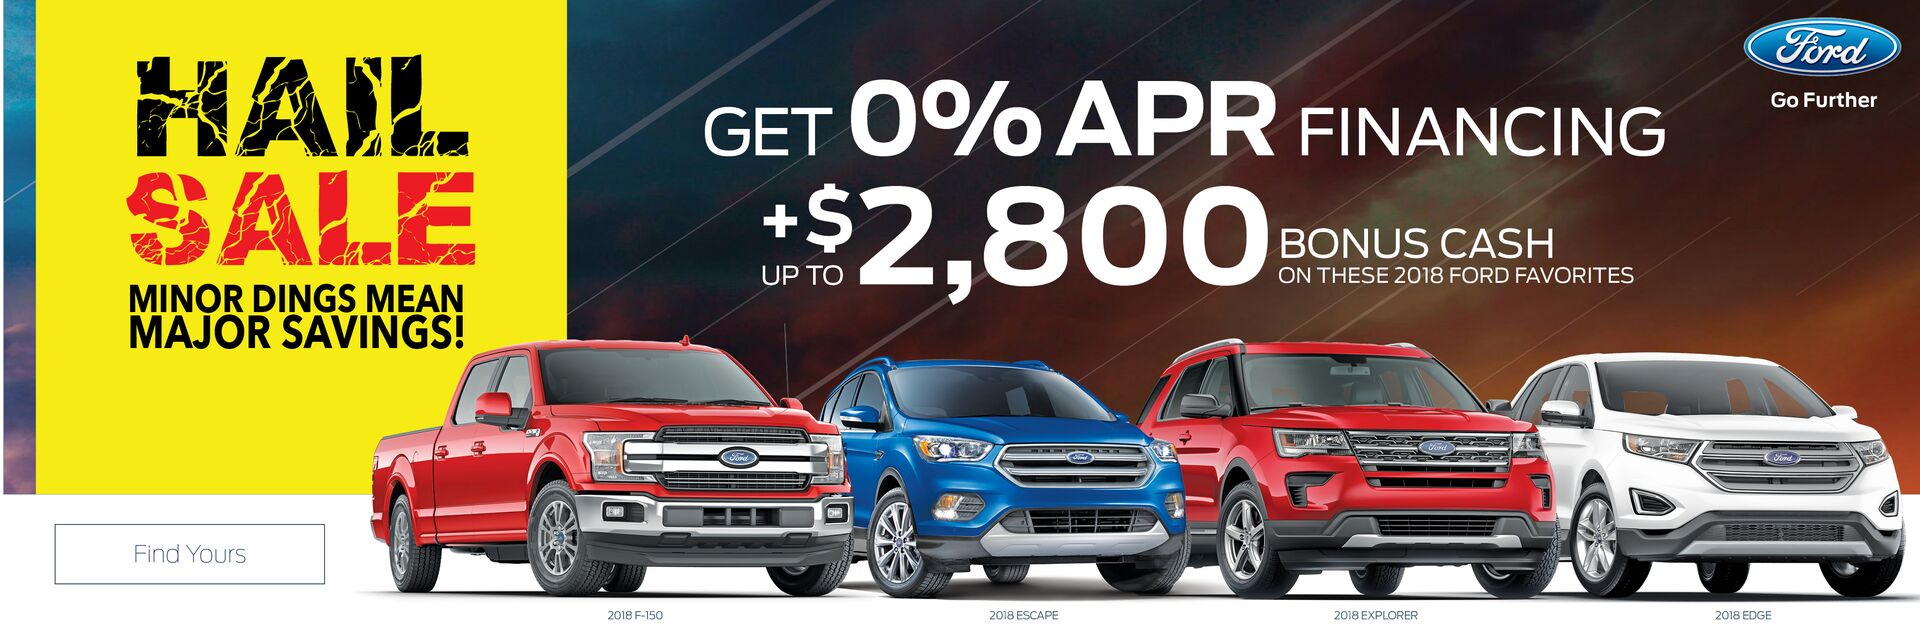 Great offers on new Fords at Holiday Automotive in Fond du Lac, WI